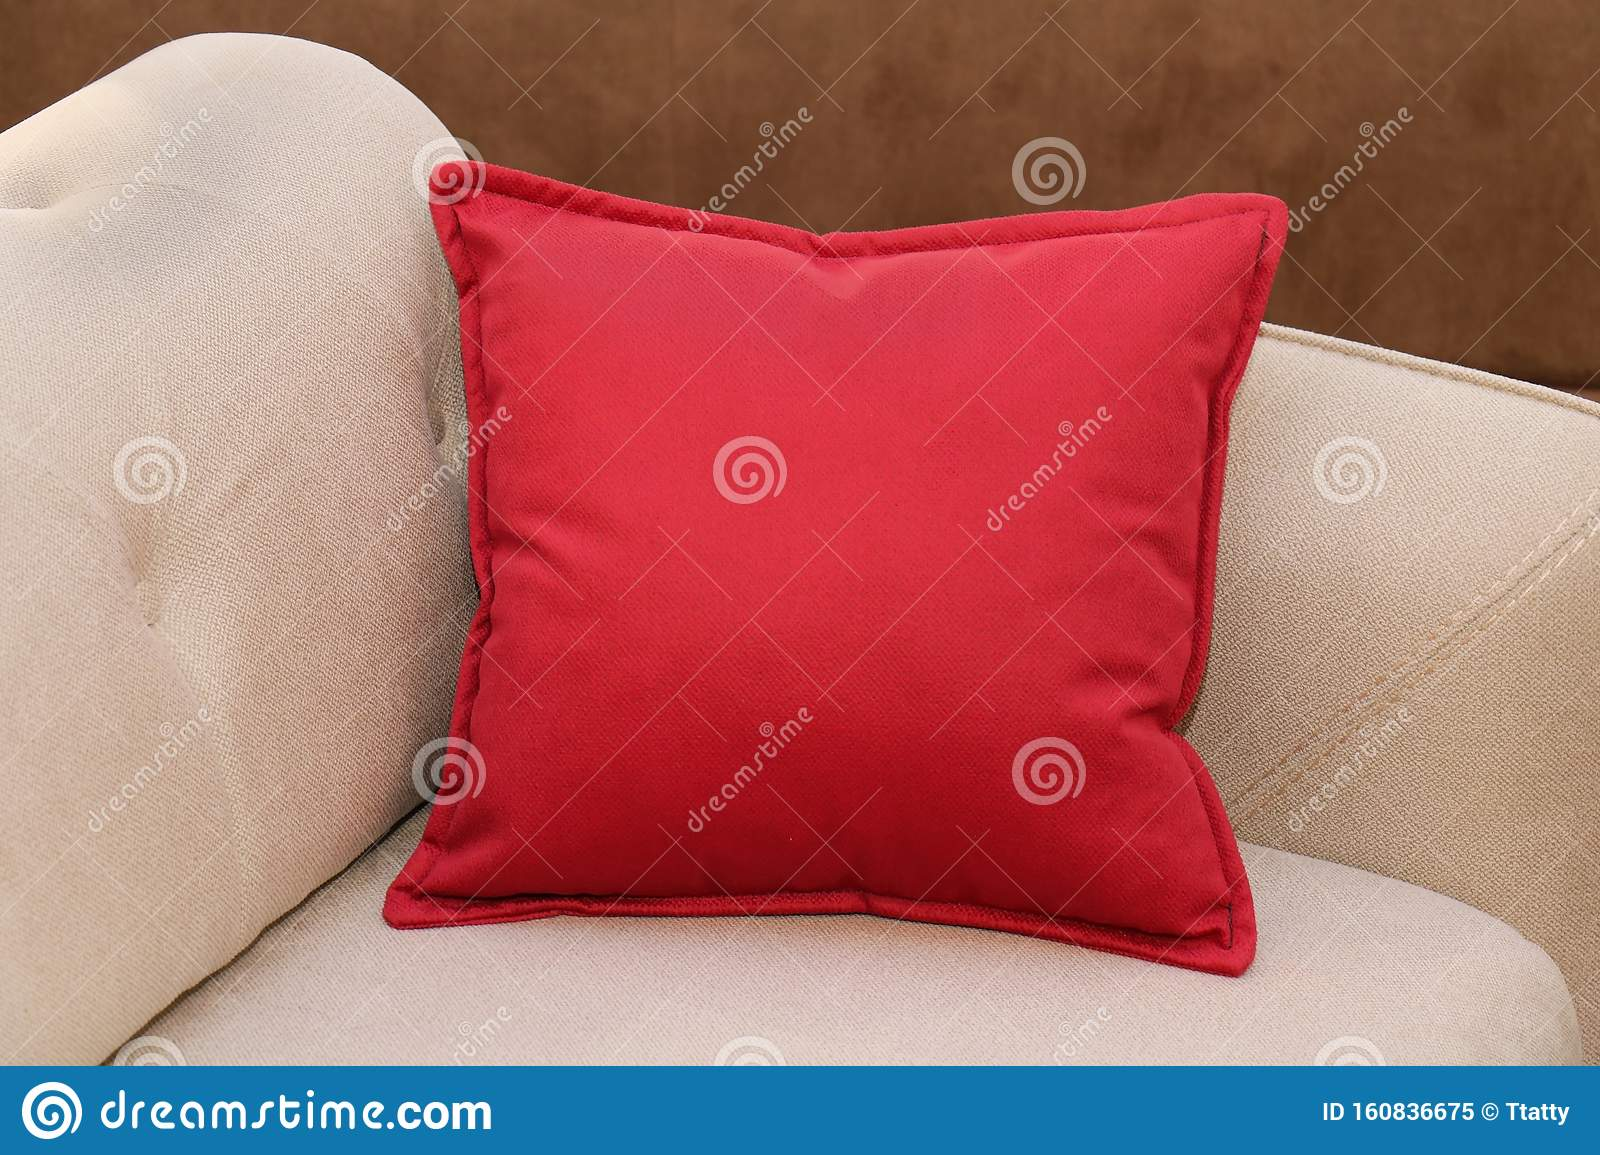 Red Pillow On Sofa Stock Image Image Of Decor Sofa 160836675